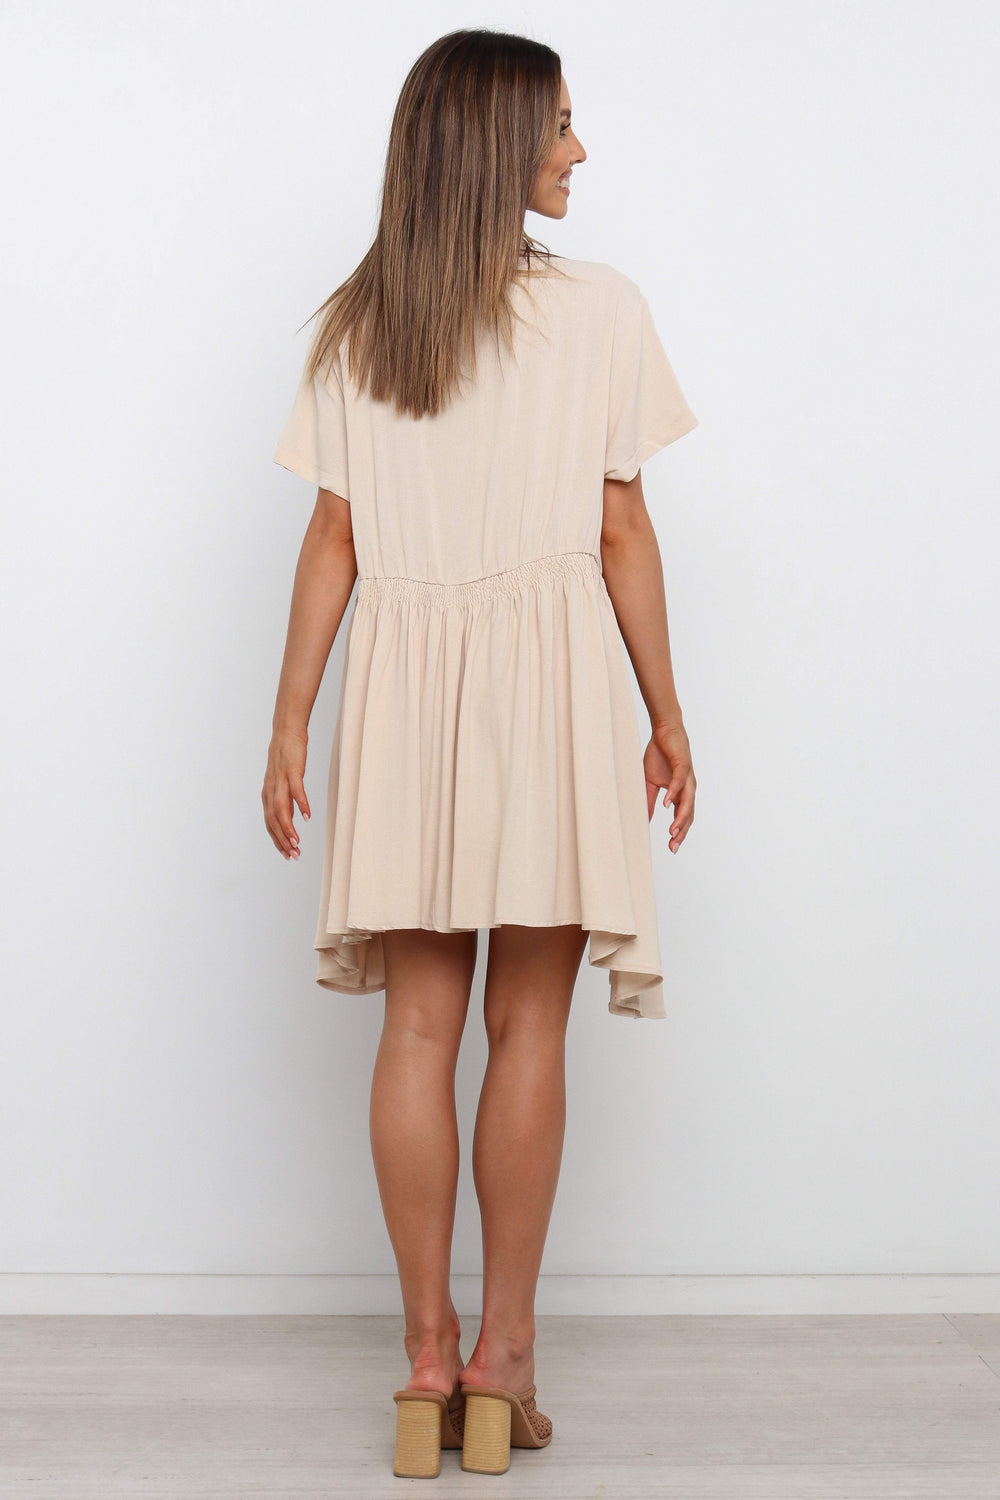 DRESSES ***Denali Dress - Beige 17/01